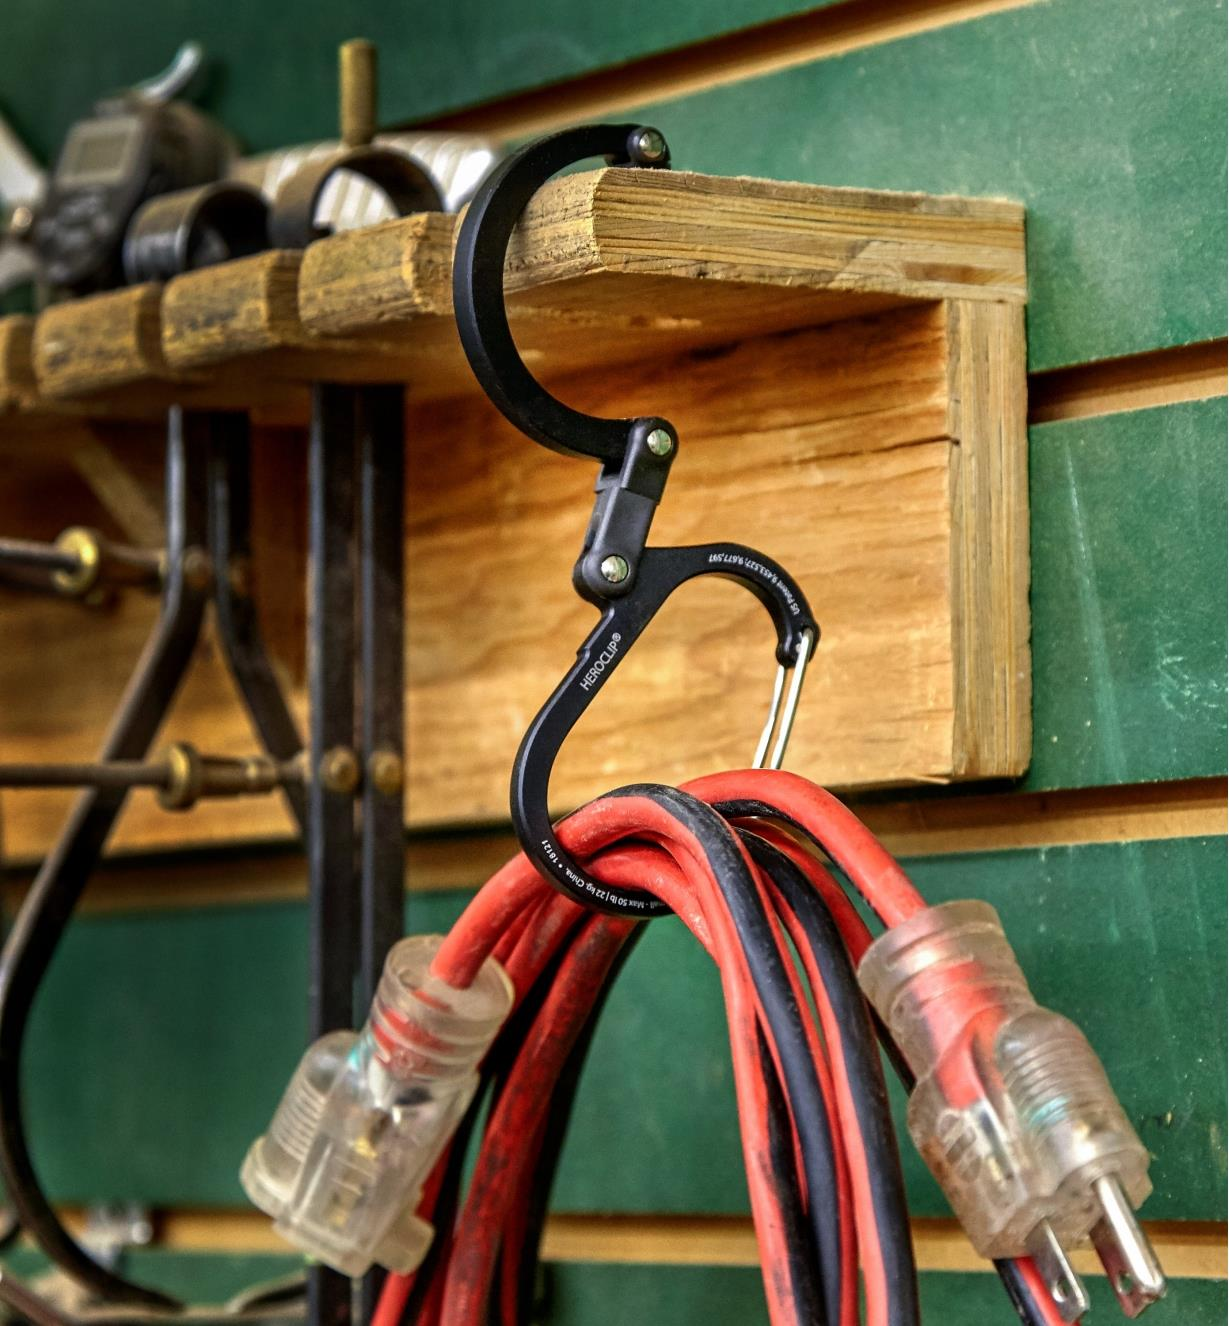 A Heroclip carabiner used to hang a coiled extension cord from a shelf in a workshop